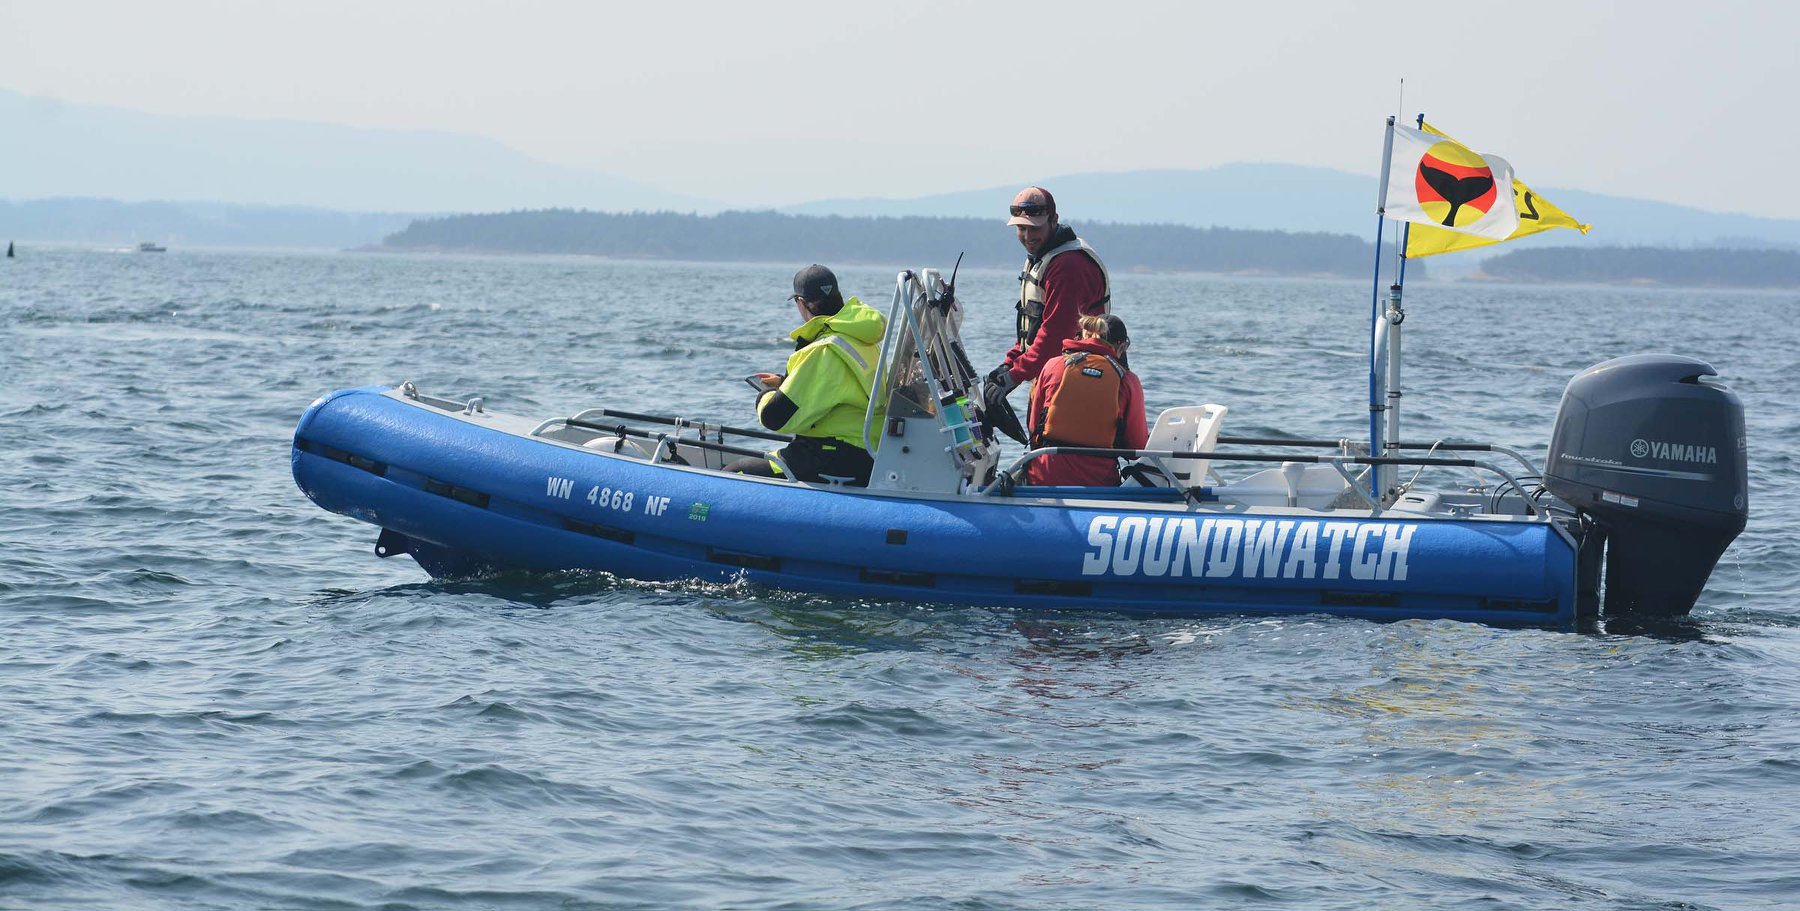 Tamsen helping track J35 and her calf aboard the Soundwatch boat.